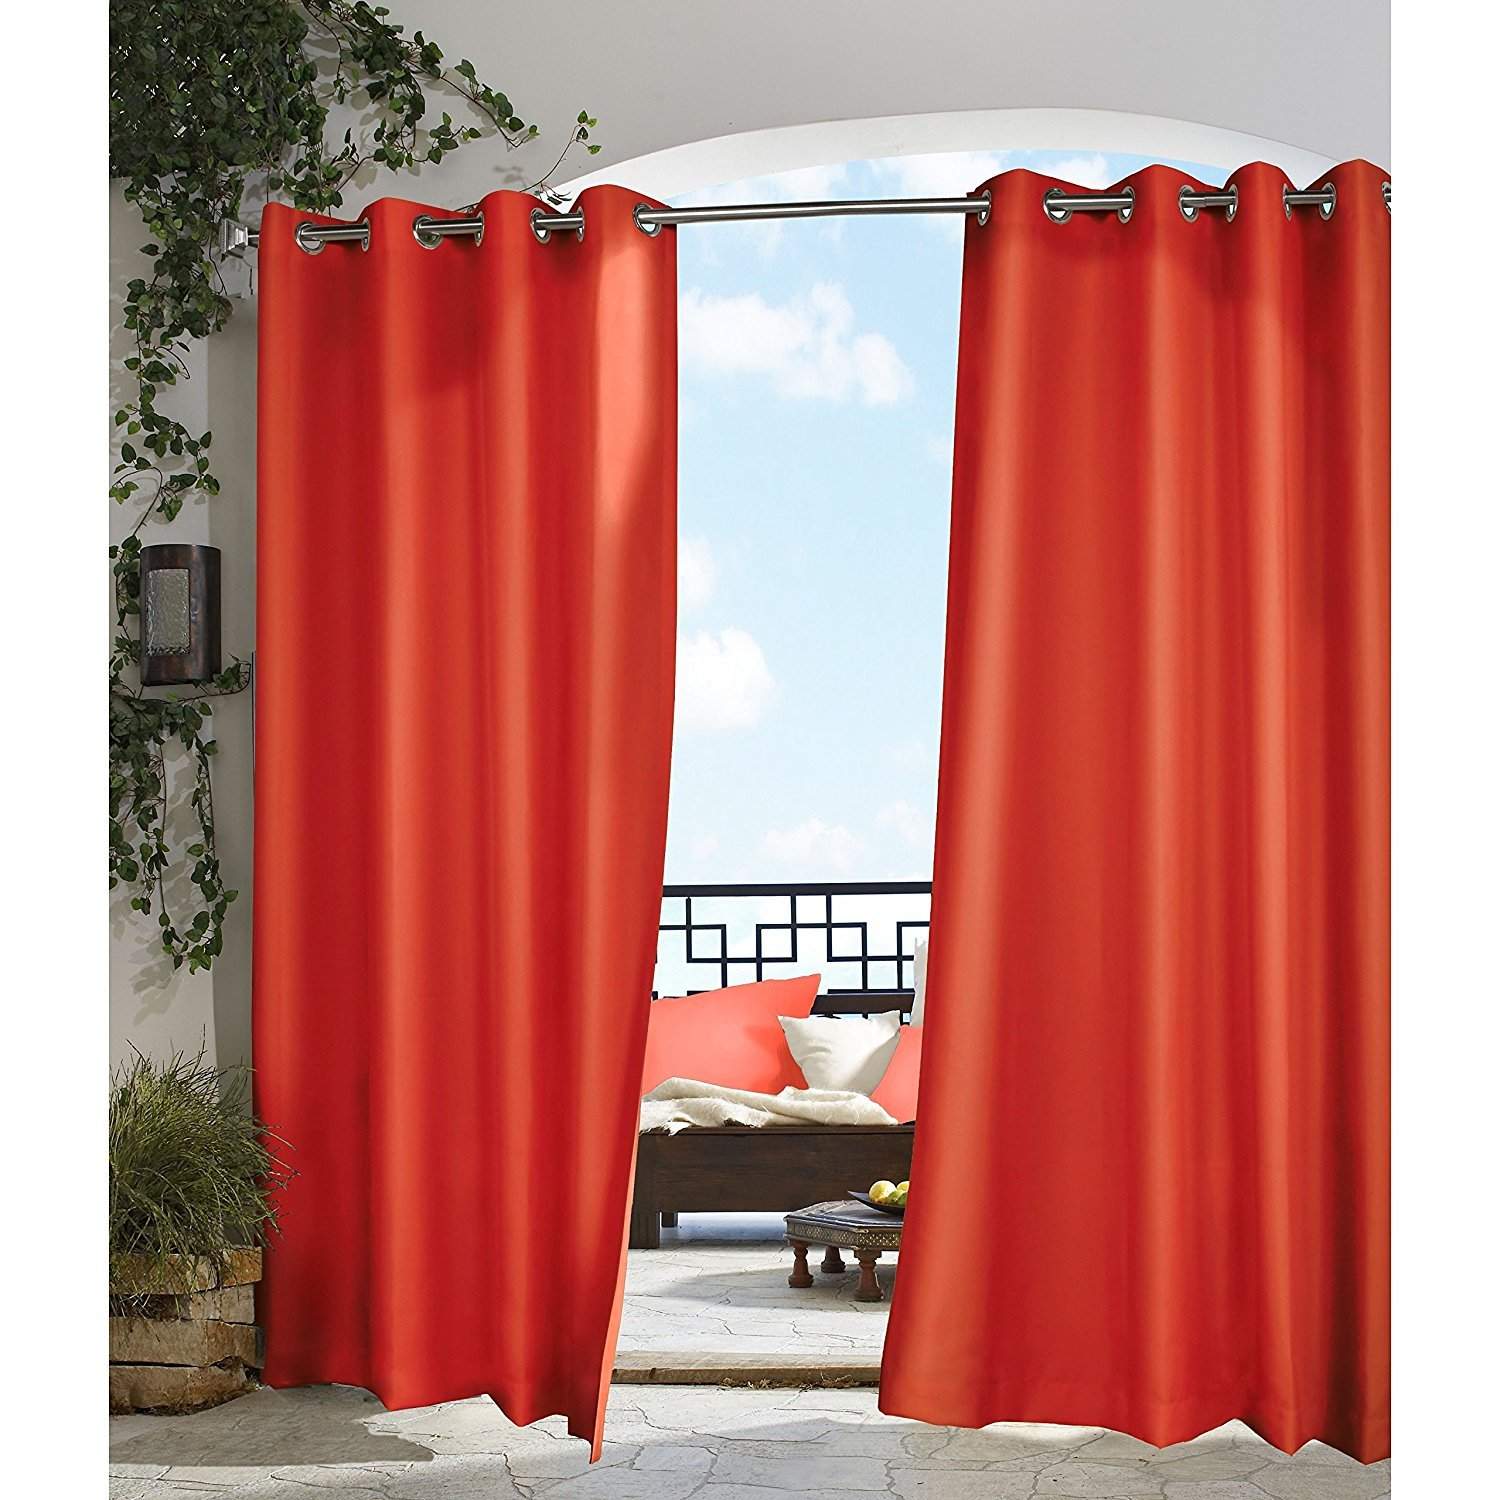 un 1pc 96 Outdoor Red Gazebo Curtain, Cabana Polyester, Light Red Color Outside Window Treatment Single, Indoor Patio Porch Deck Entrance Door Grommet Ring Top Doorway Pergola Drapes